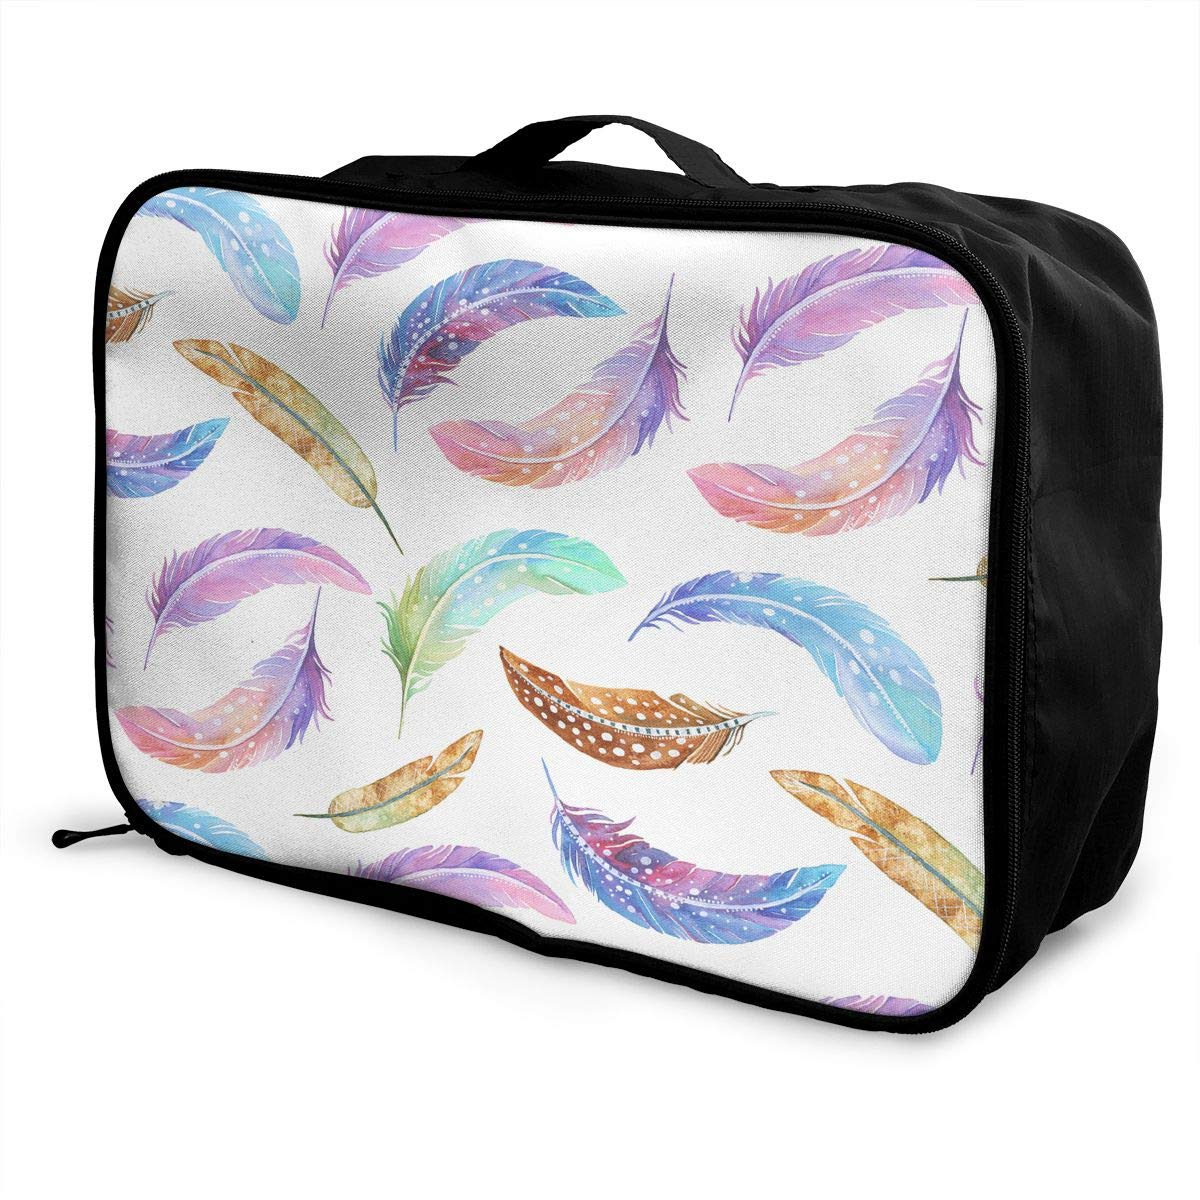 Travel Luggage Duffle Bag Lightweight Portable Handbag Colorful Feathers Watercolor Large Capacity Waterproof Foldable Storage Tote